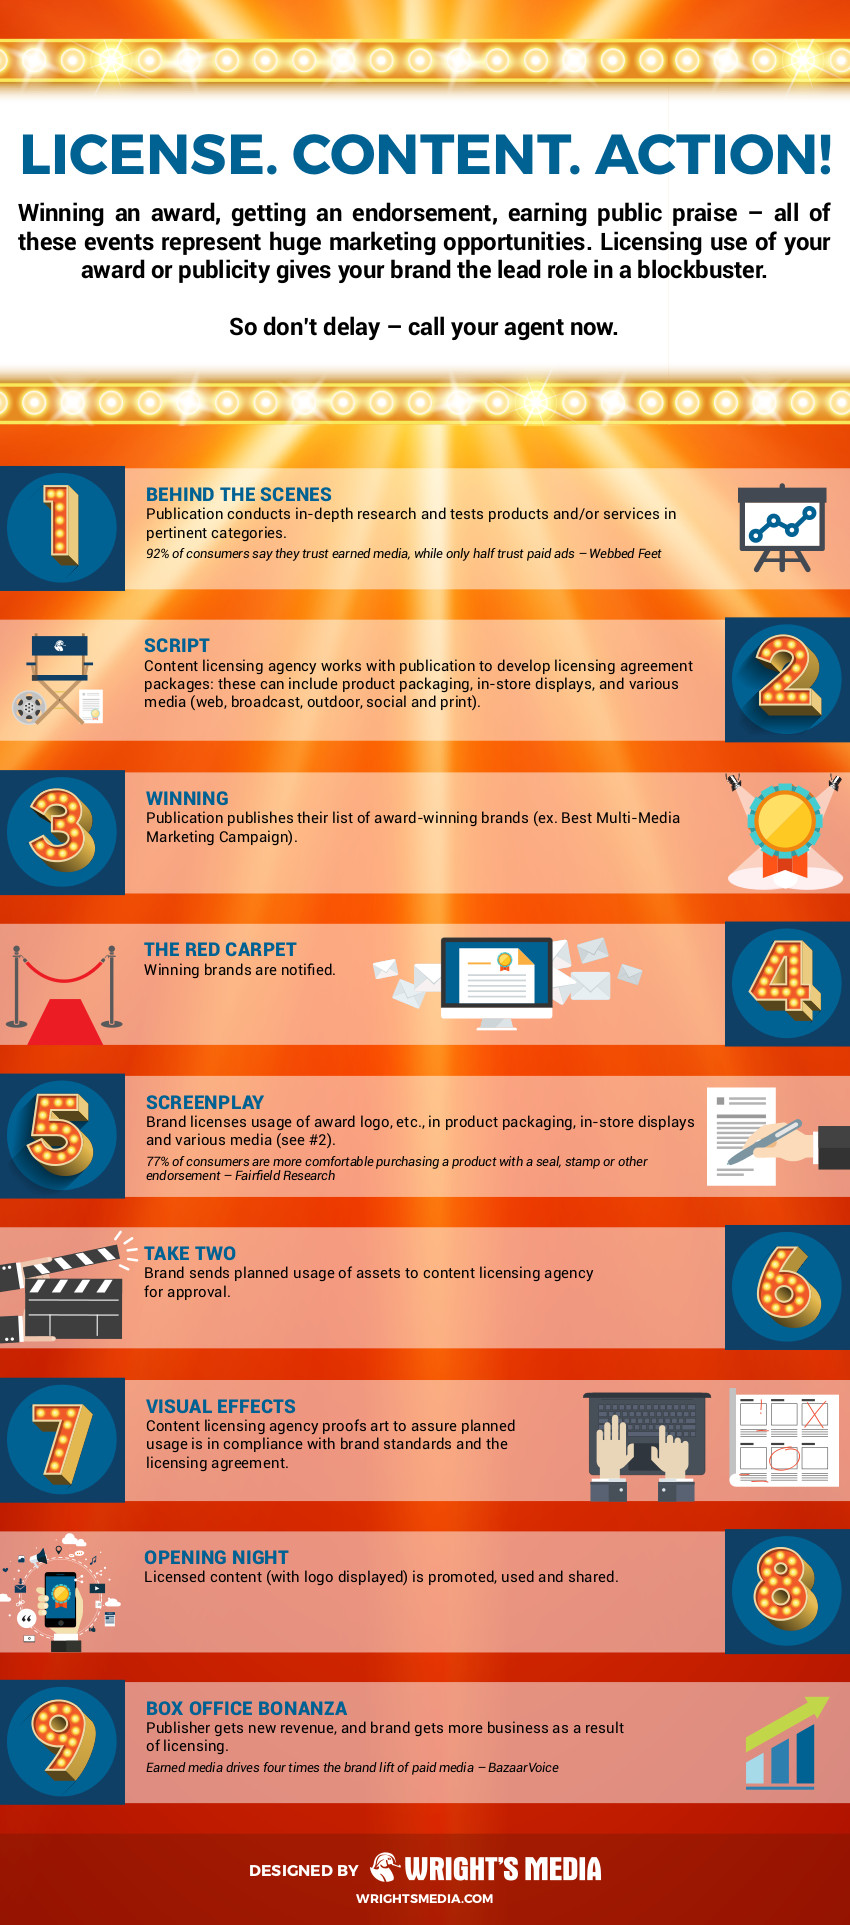 9 Steps Of Content Licensing Brand Content Licensing Agency